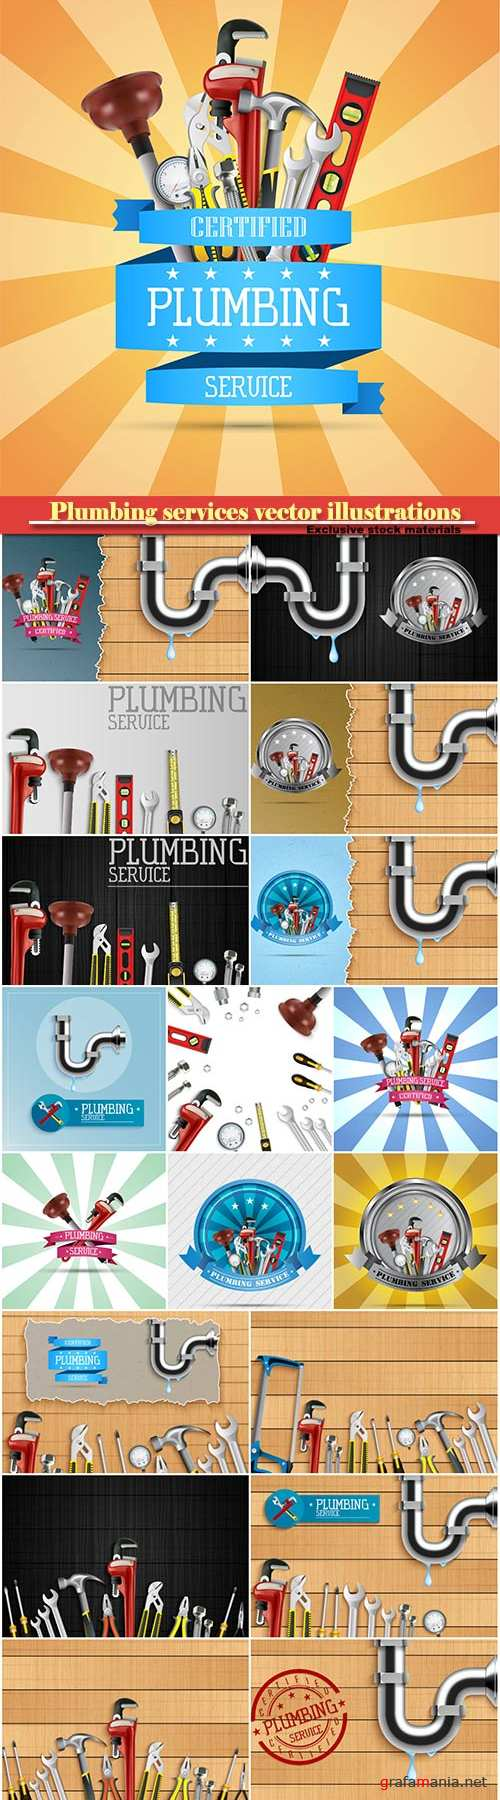 Plumbing services vector illustrations